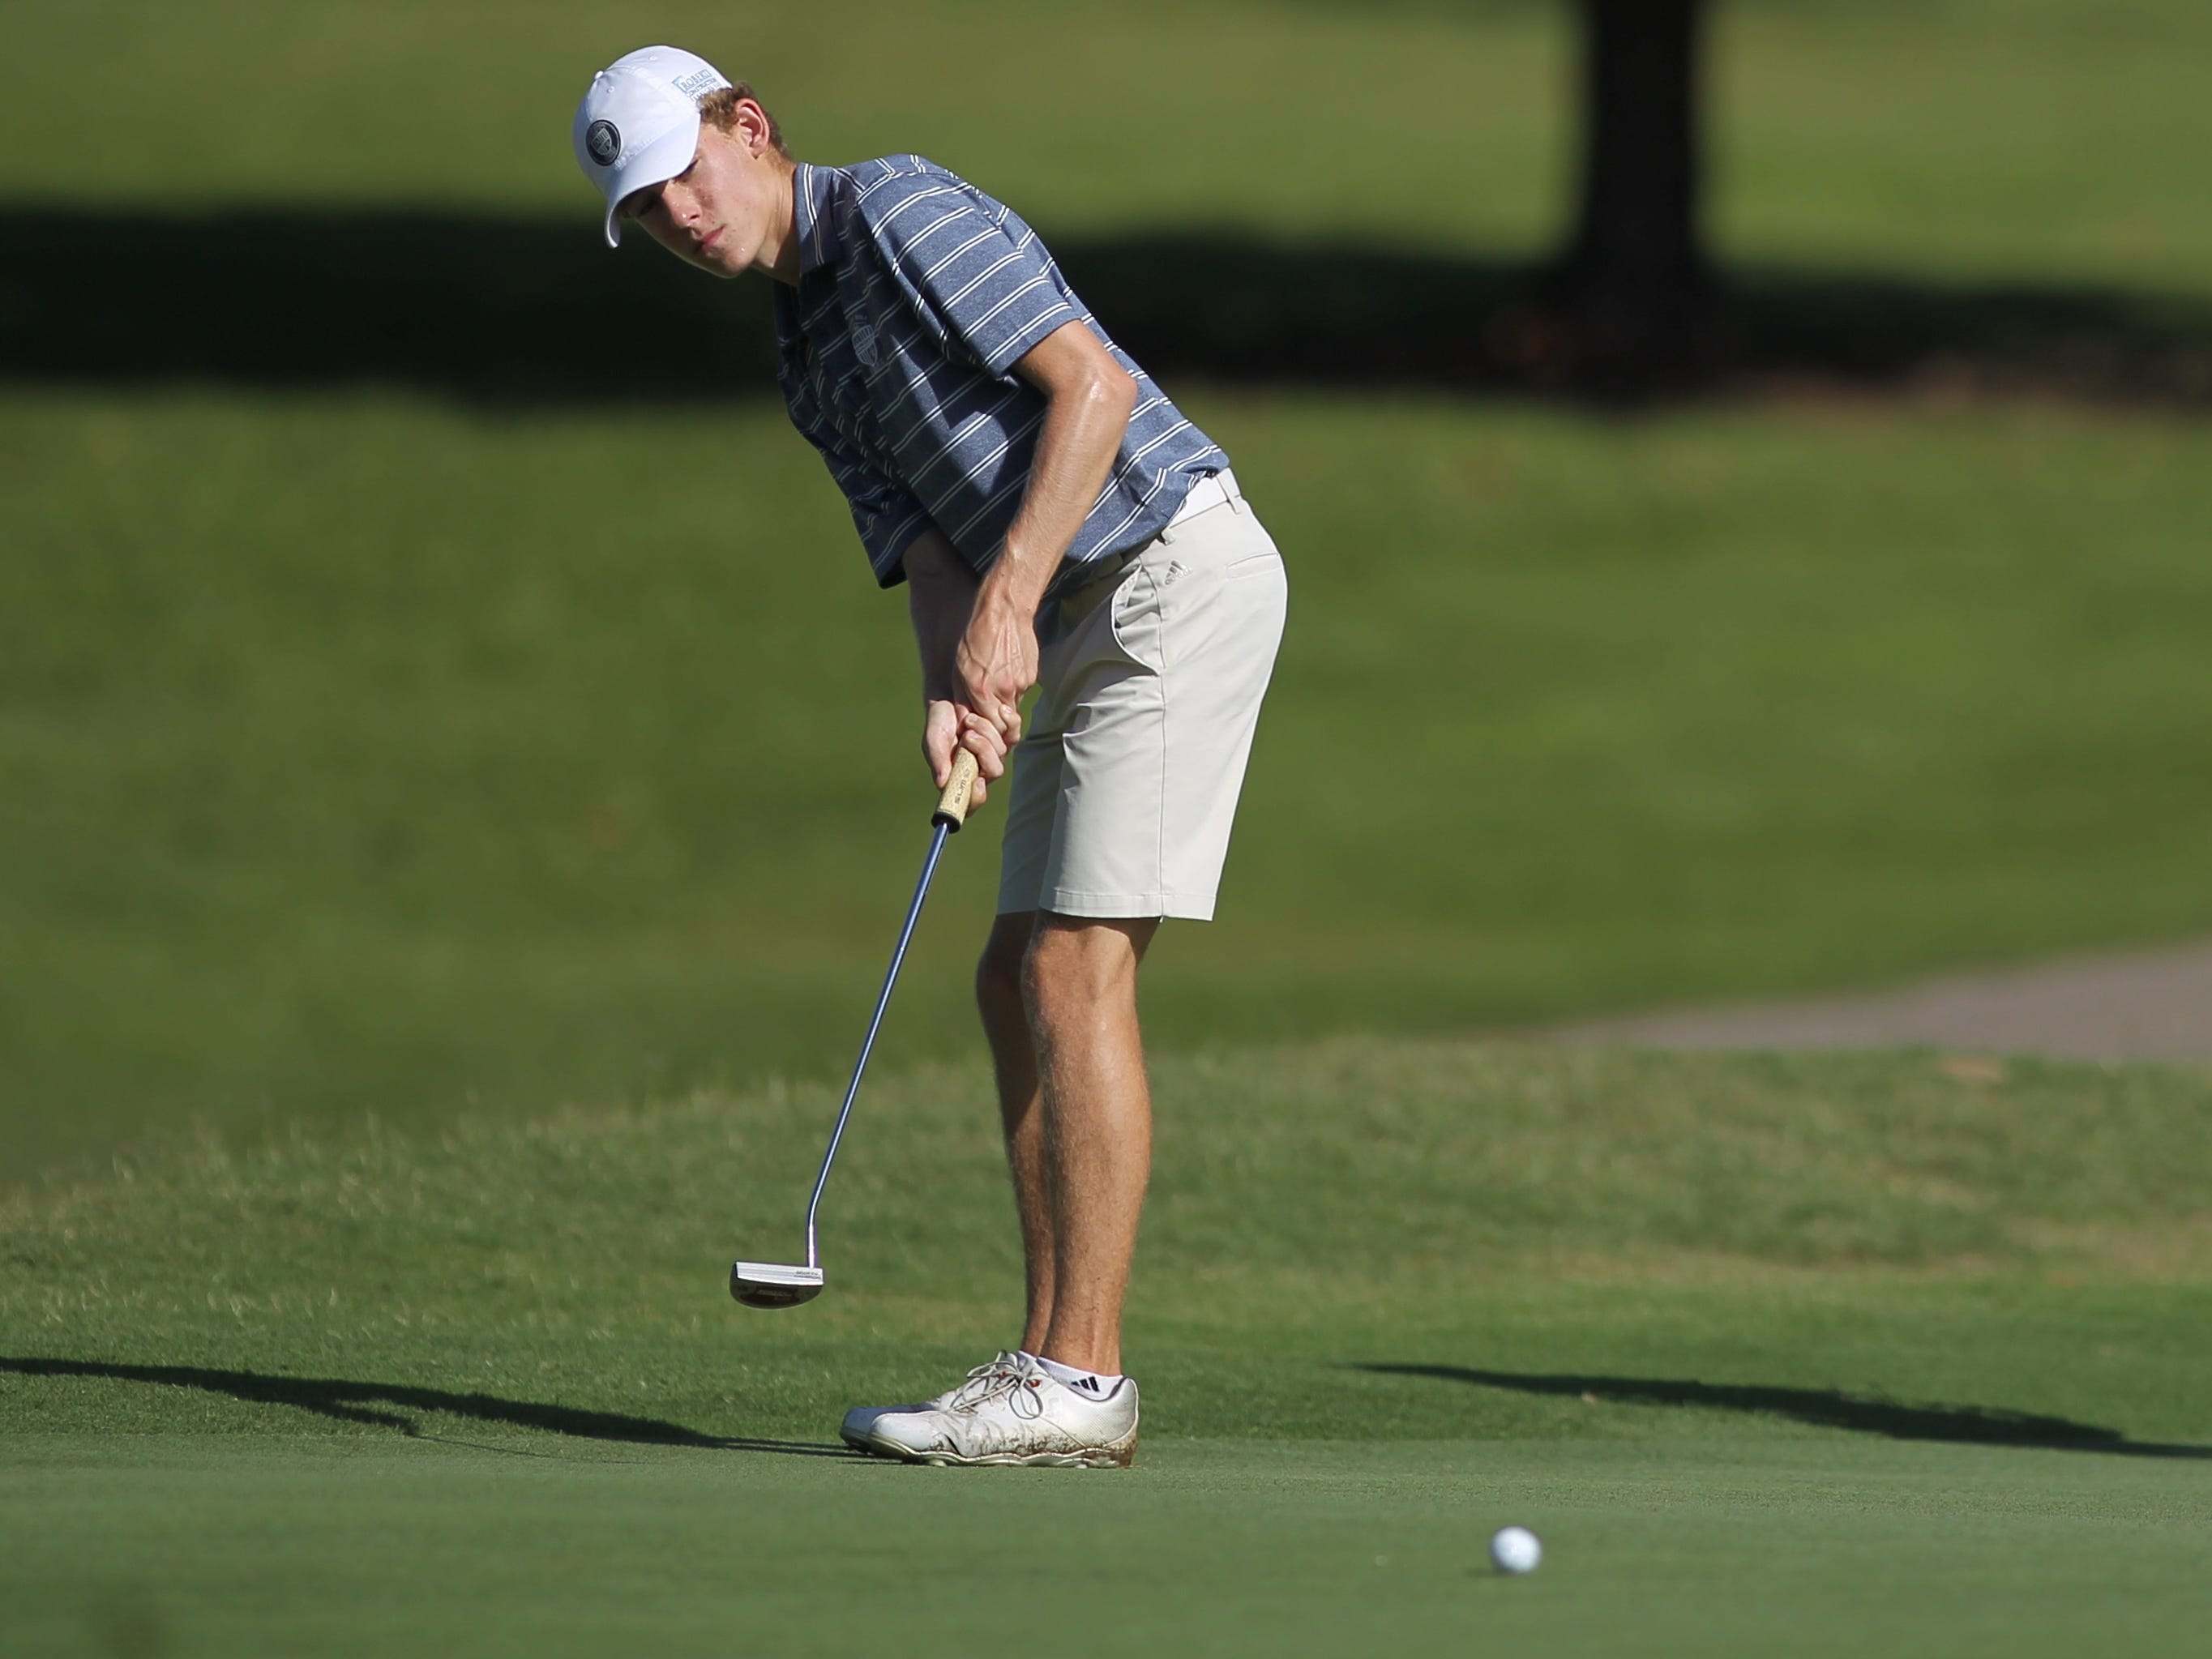 Maclay's Cole Miller putts during the boys golf City Championship at Hilaman Golf Course on Monday, Oct. 1, 2018.